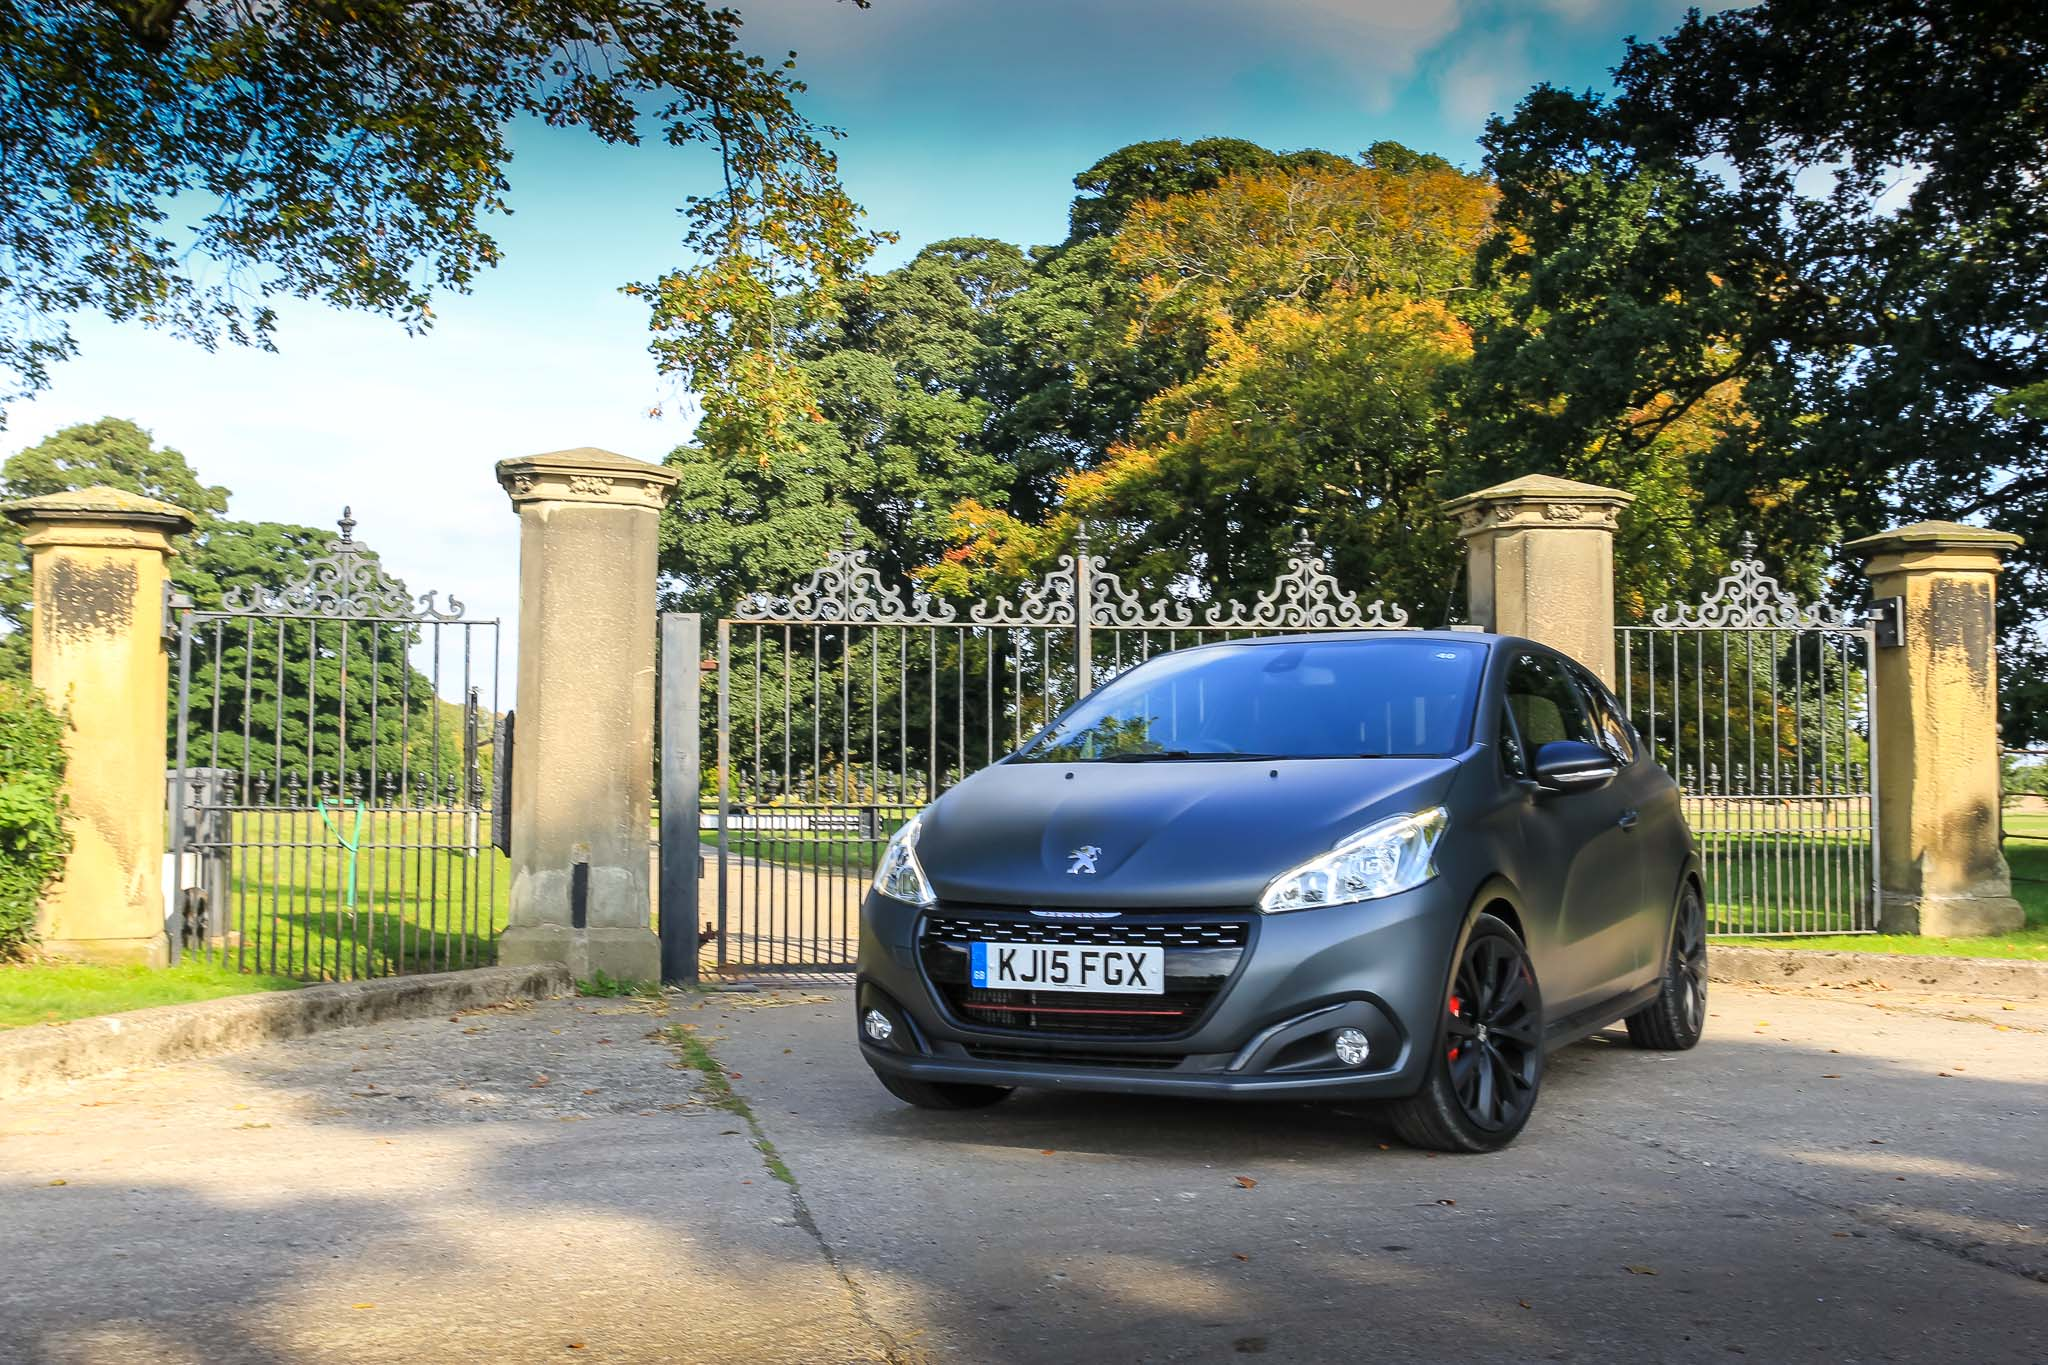 Driven Peugeot 208 Gti By Peugeot Sport Review